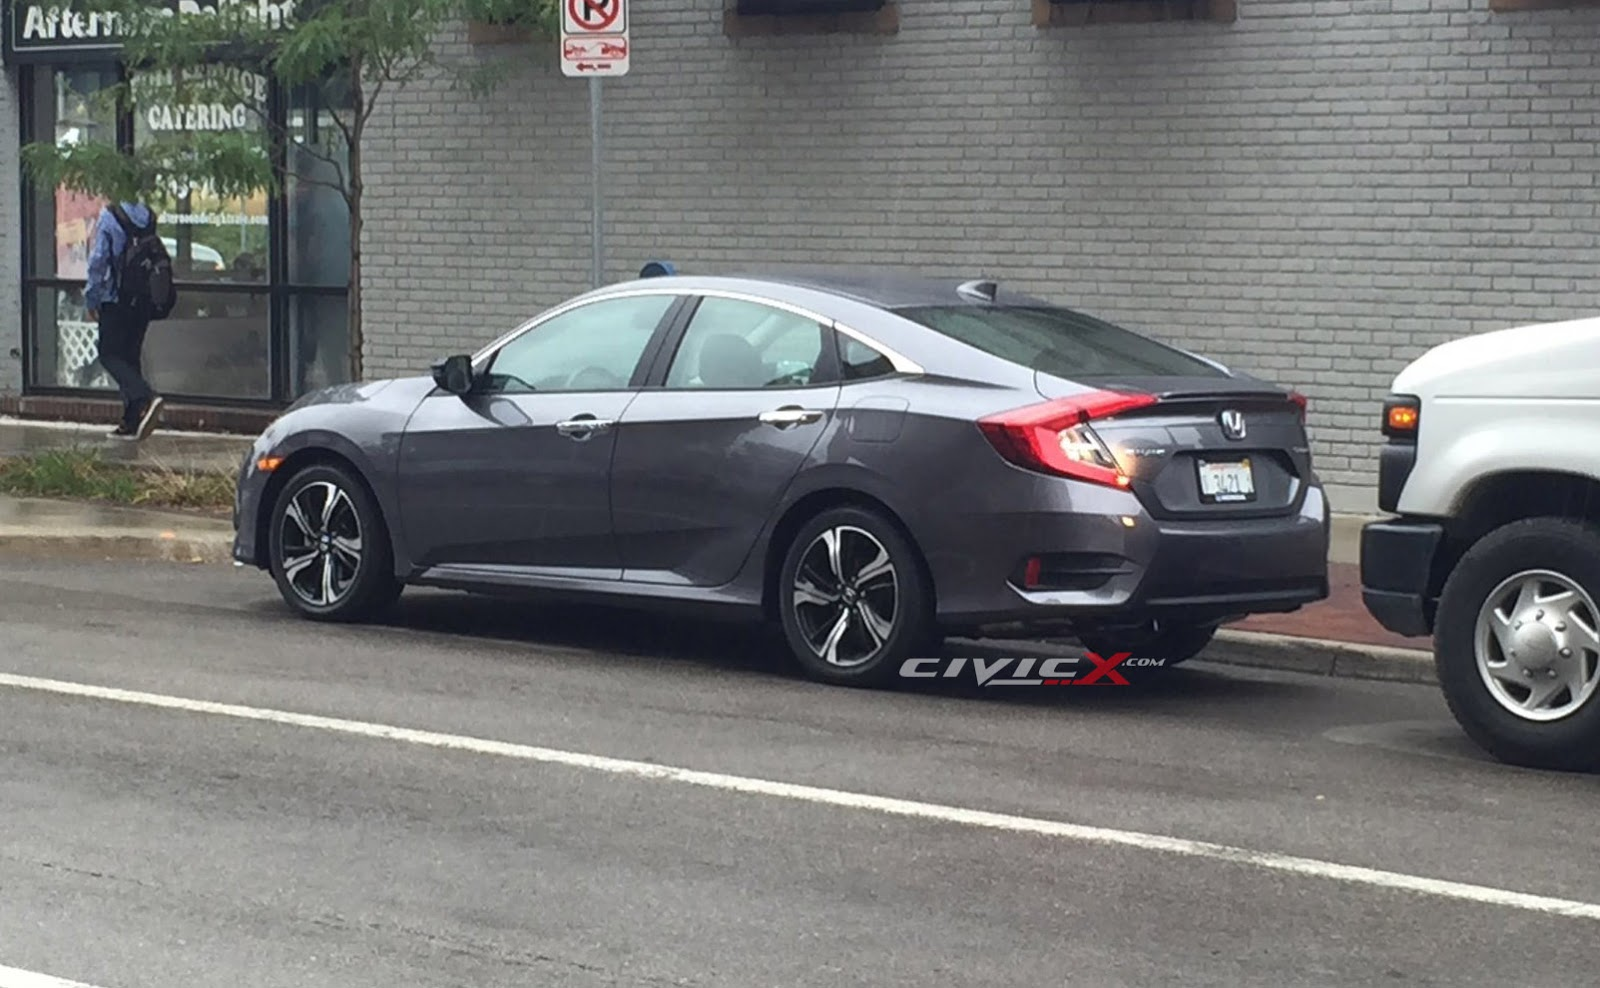 Honda S Sexier Looking Civic Sedan Busted Out In The Open